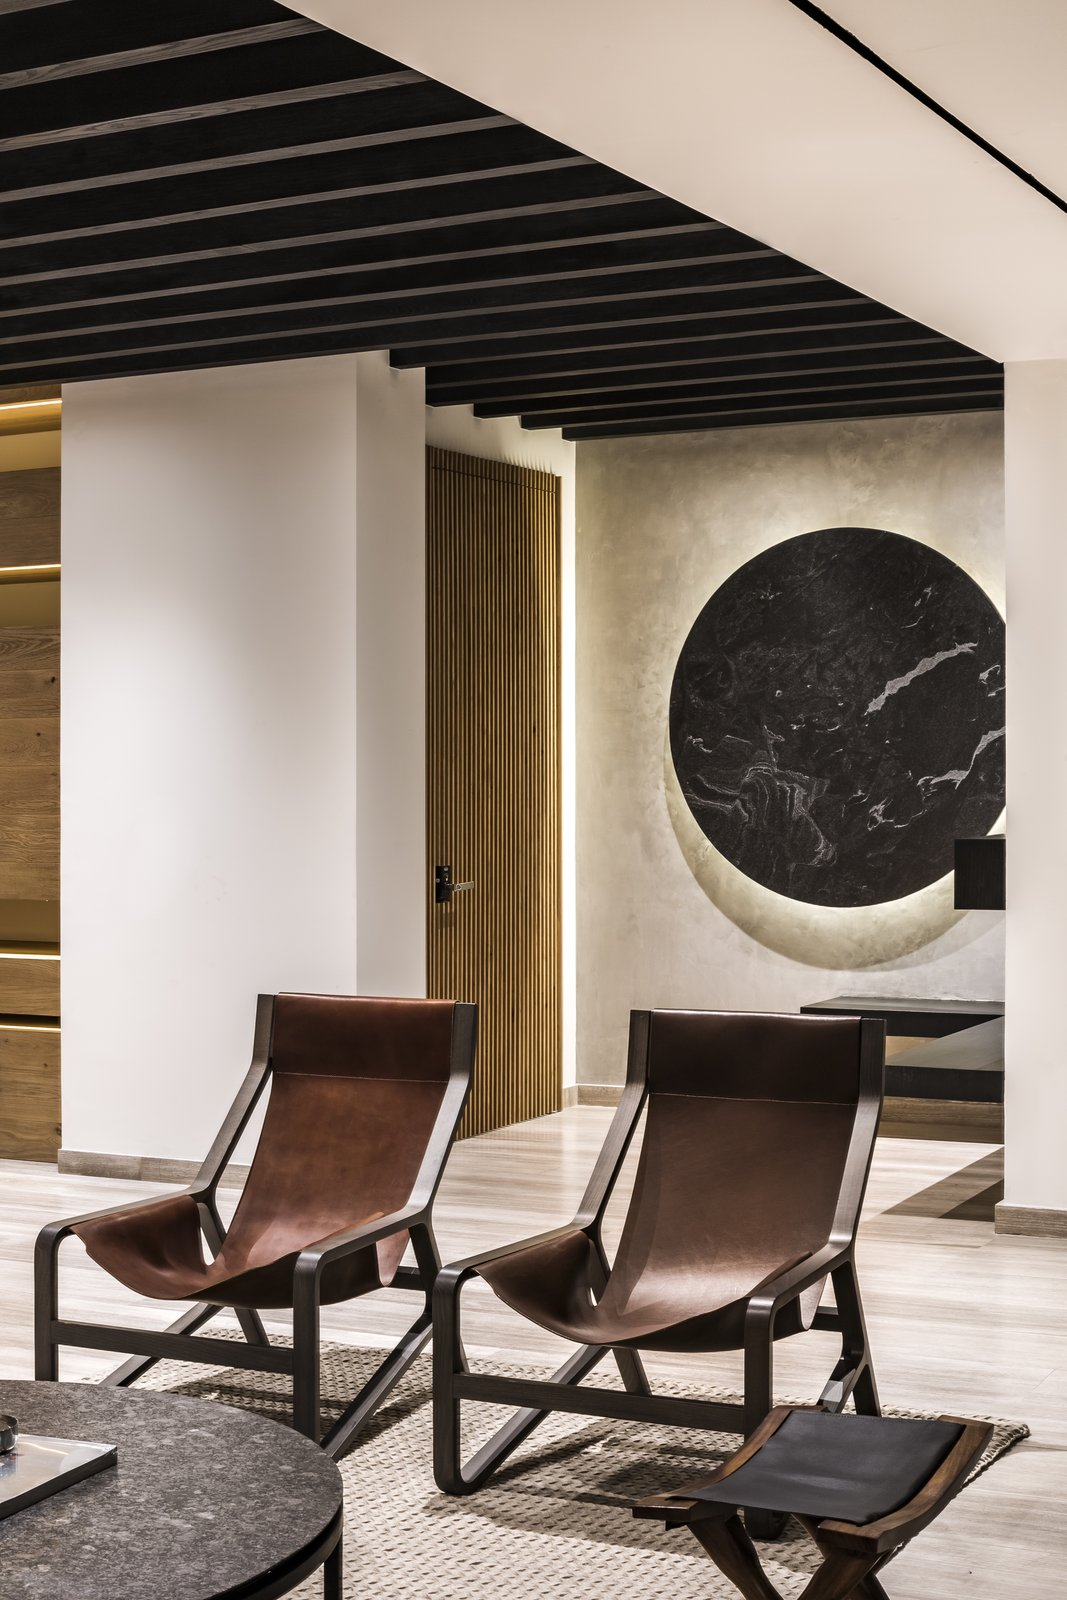 At the main access, a bold and striking marble element decorates the space